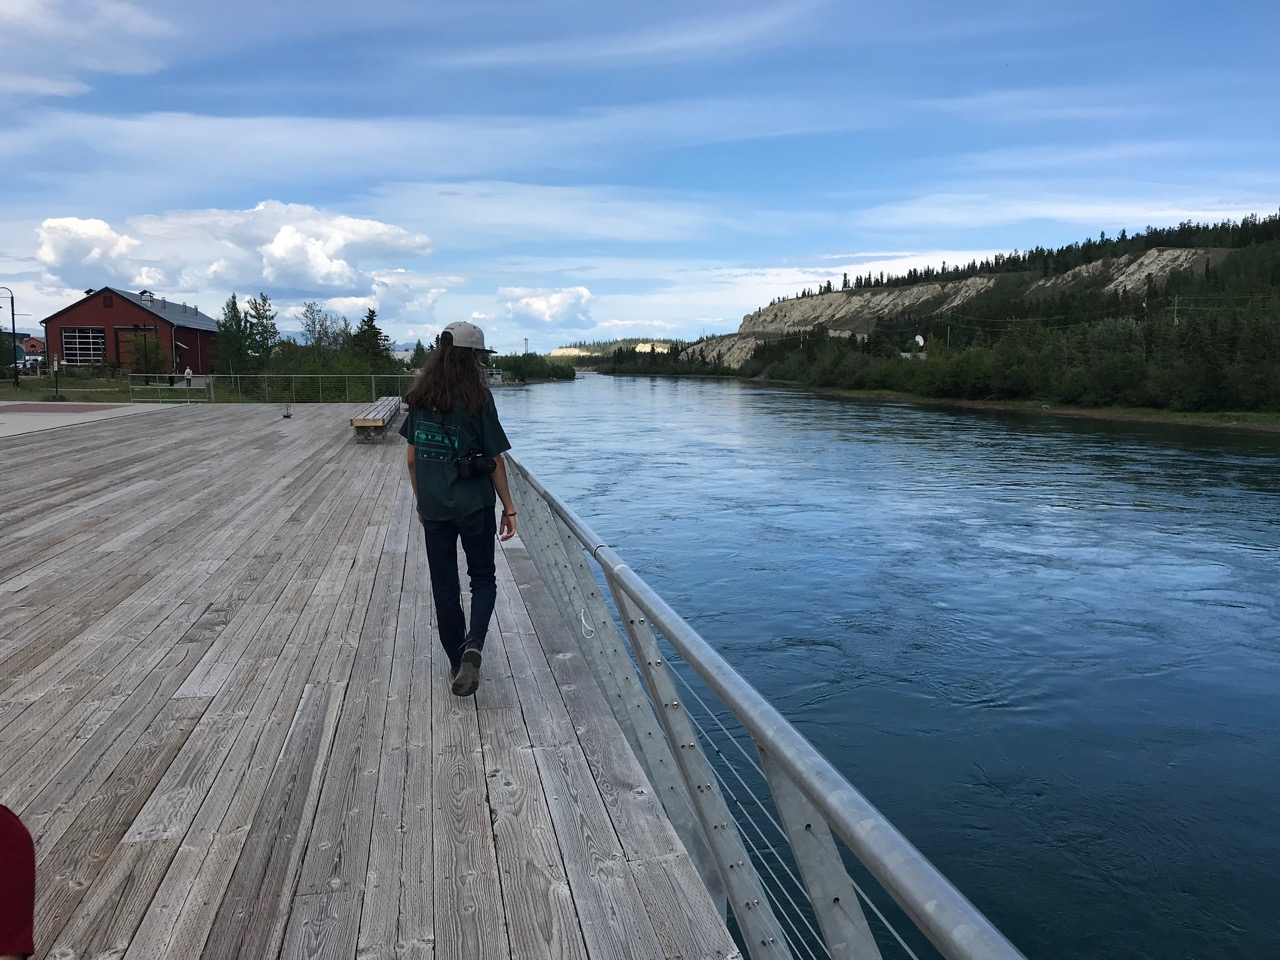 Downtown Whitehorse borders the Yukon River, and has a nice boardwalk/trail system.